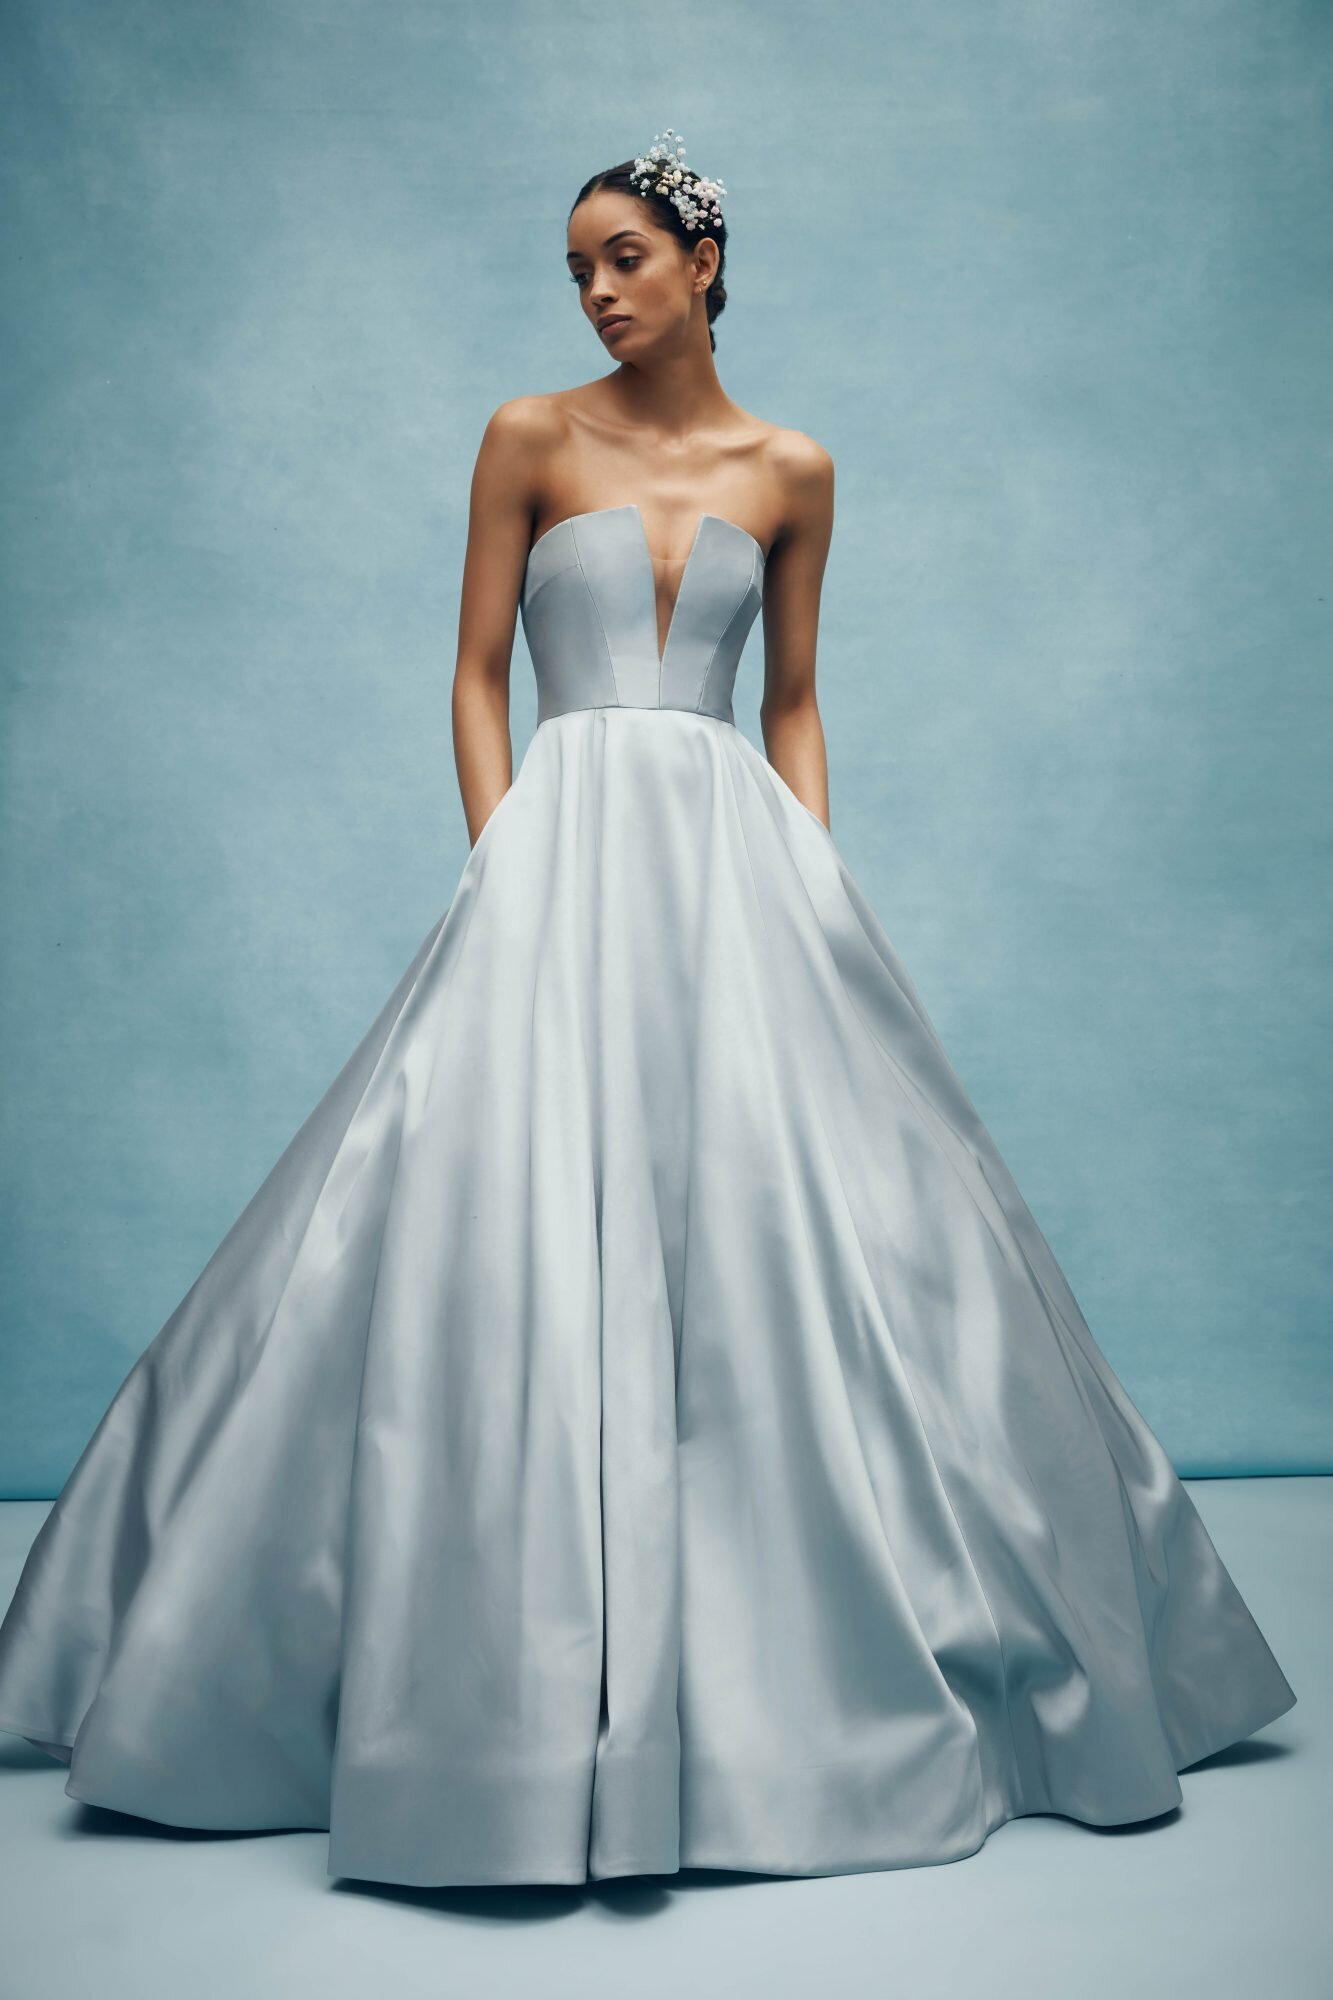 Colorful Wedding Dresses That Make A Statement Down The Aisle Martha Stewart,Below The Knee Dresses For Wedding Guests